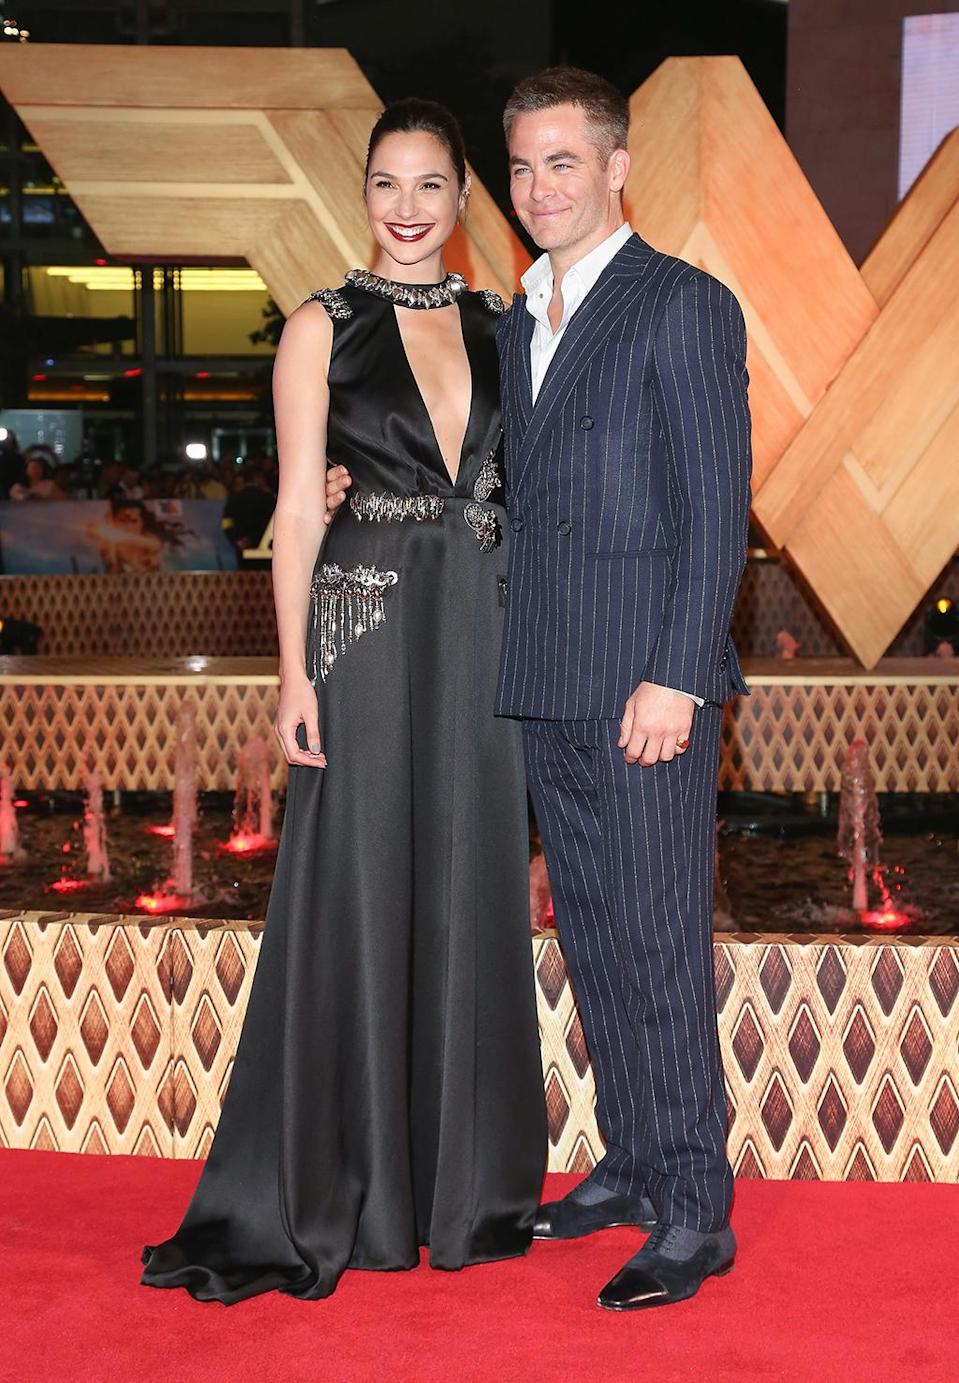 <p>With positive reviews starting to hit, stars Gadot and Pine were all smiles at the the Mexico City premiere on May 27, 2017. (Photo: Victor Chavez/WireImage) </p>